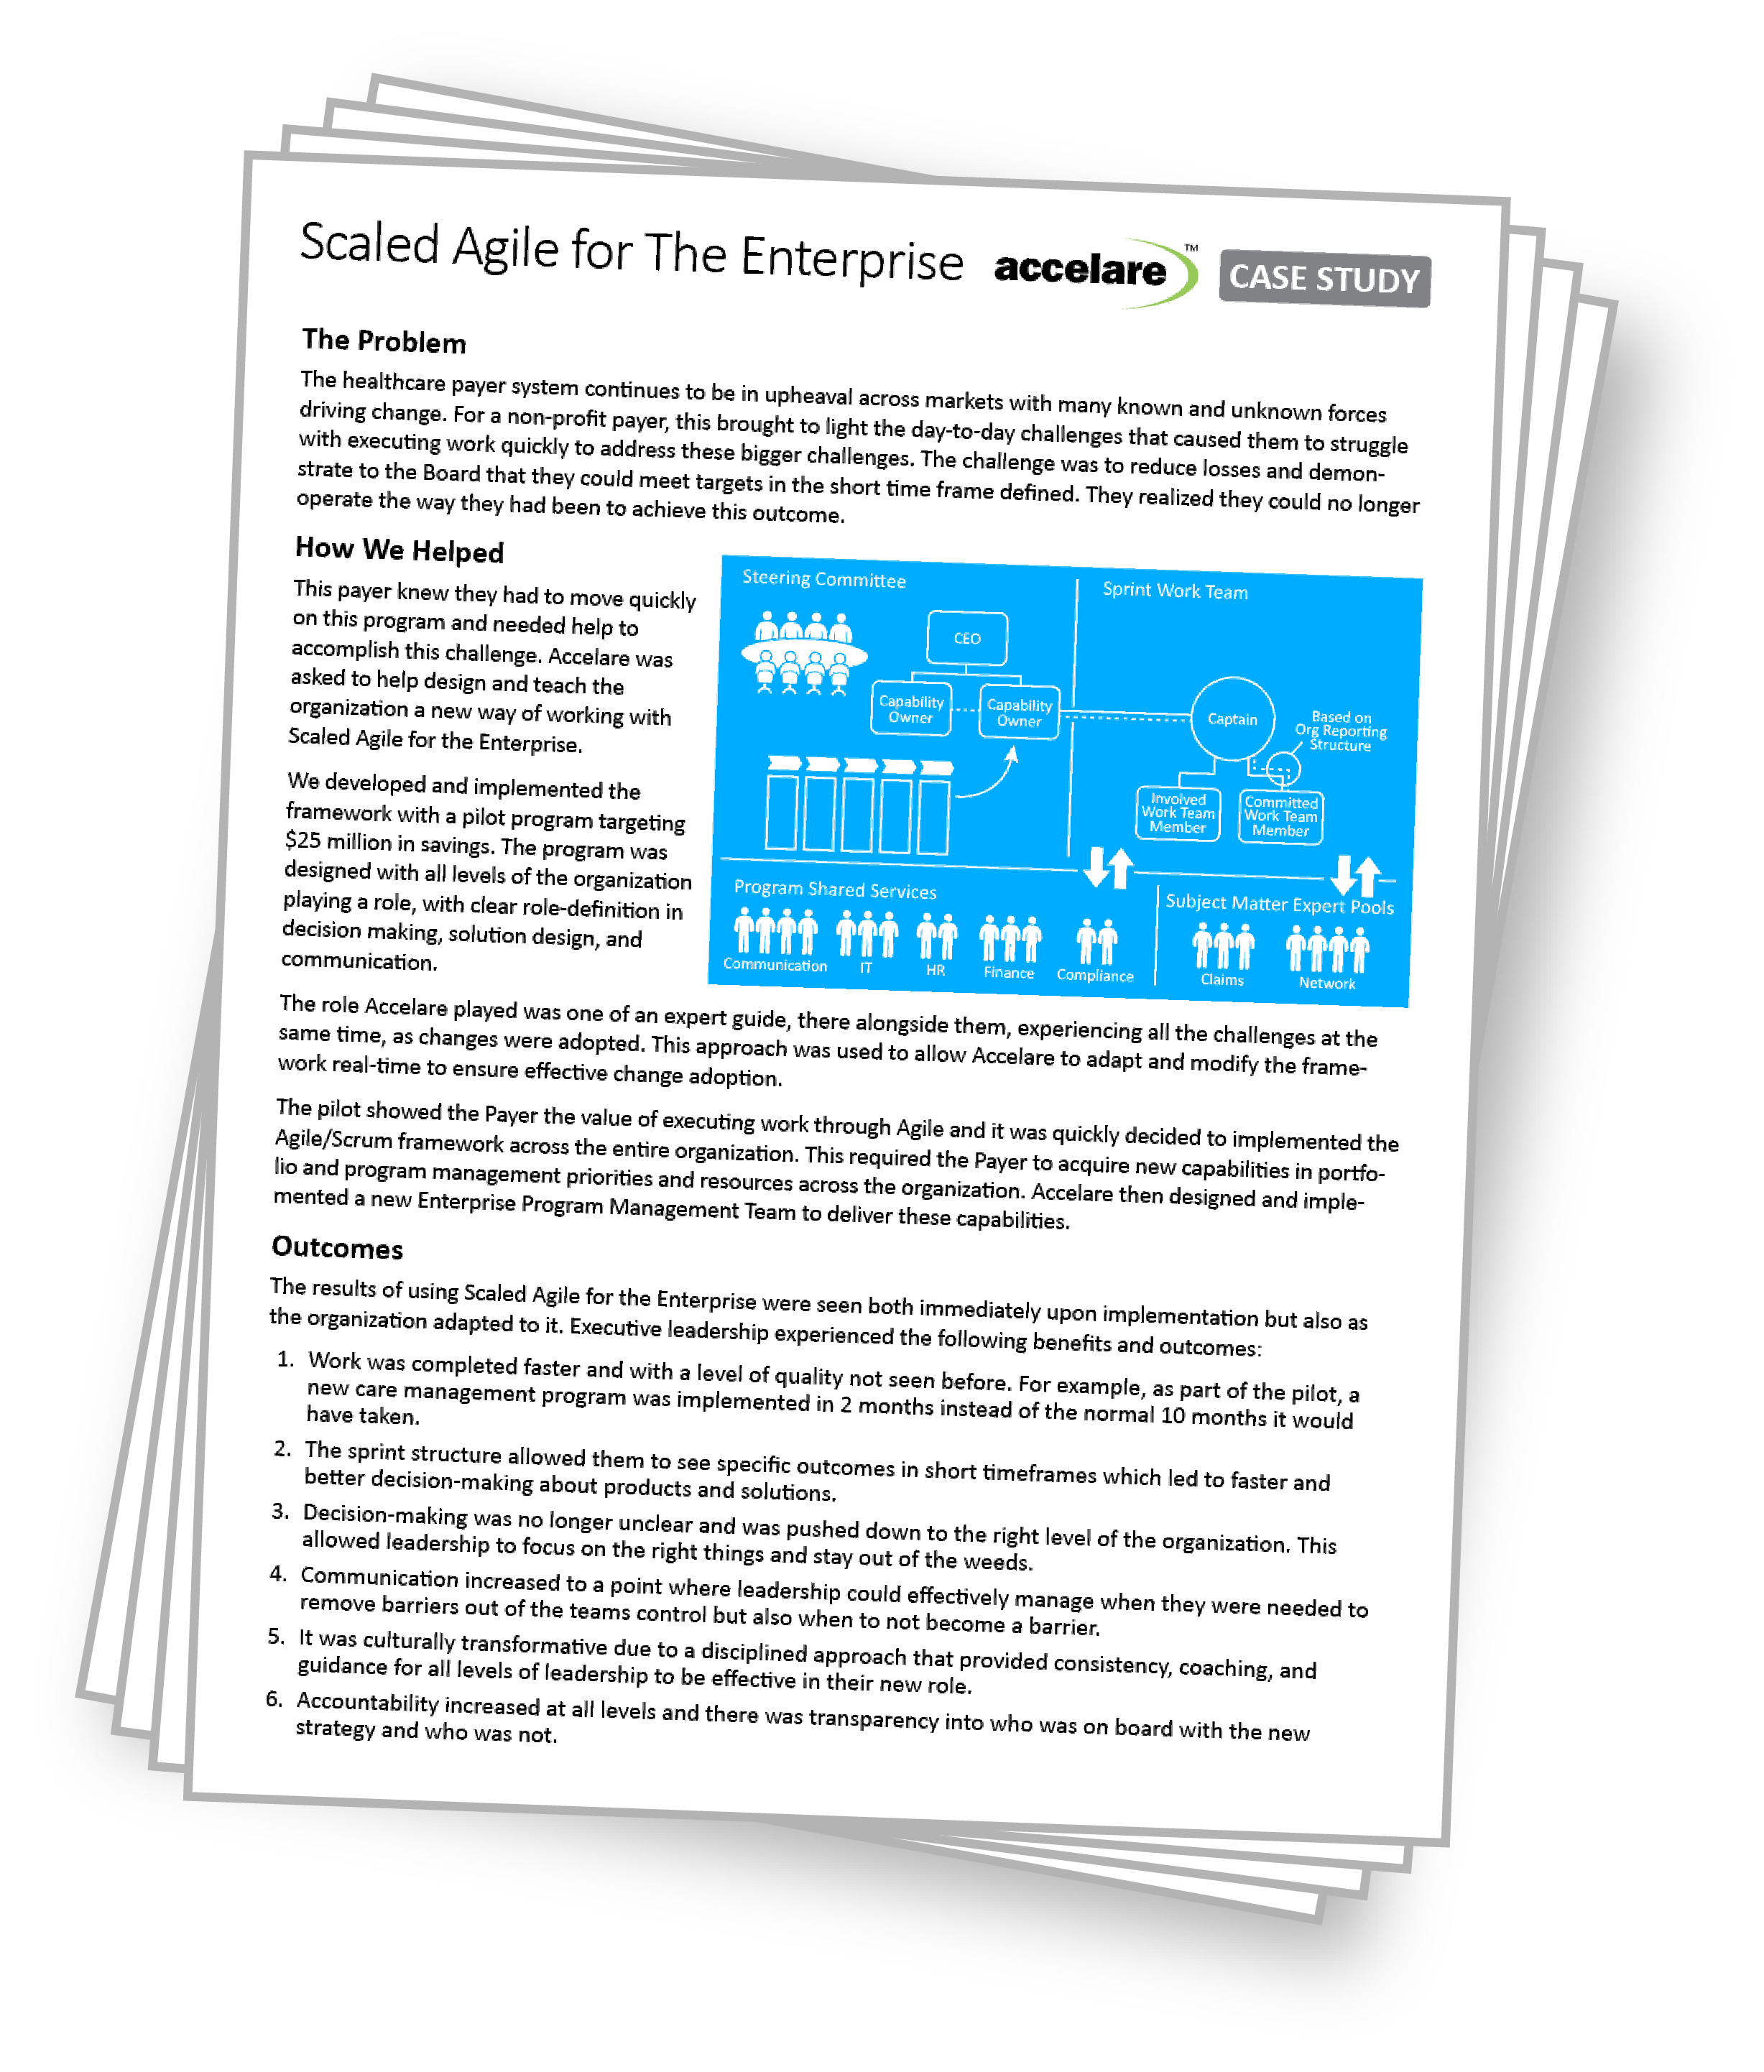 Scaled Agile for The Enterprise Case Study